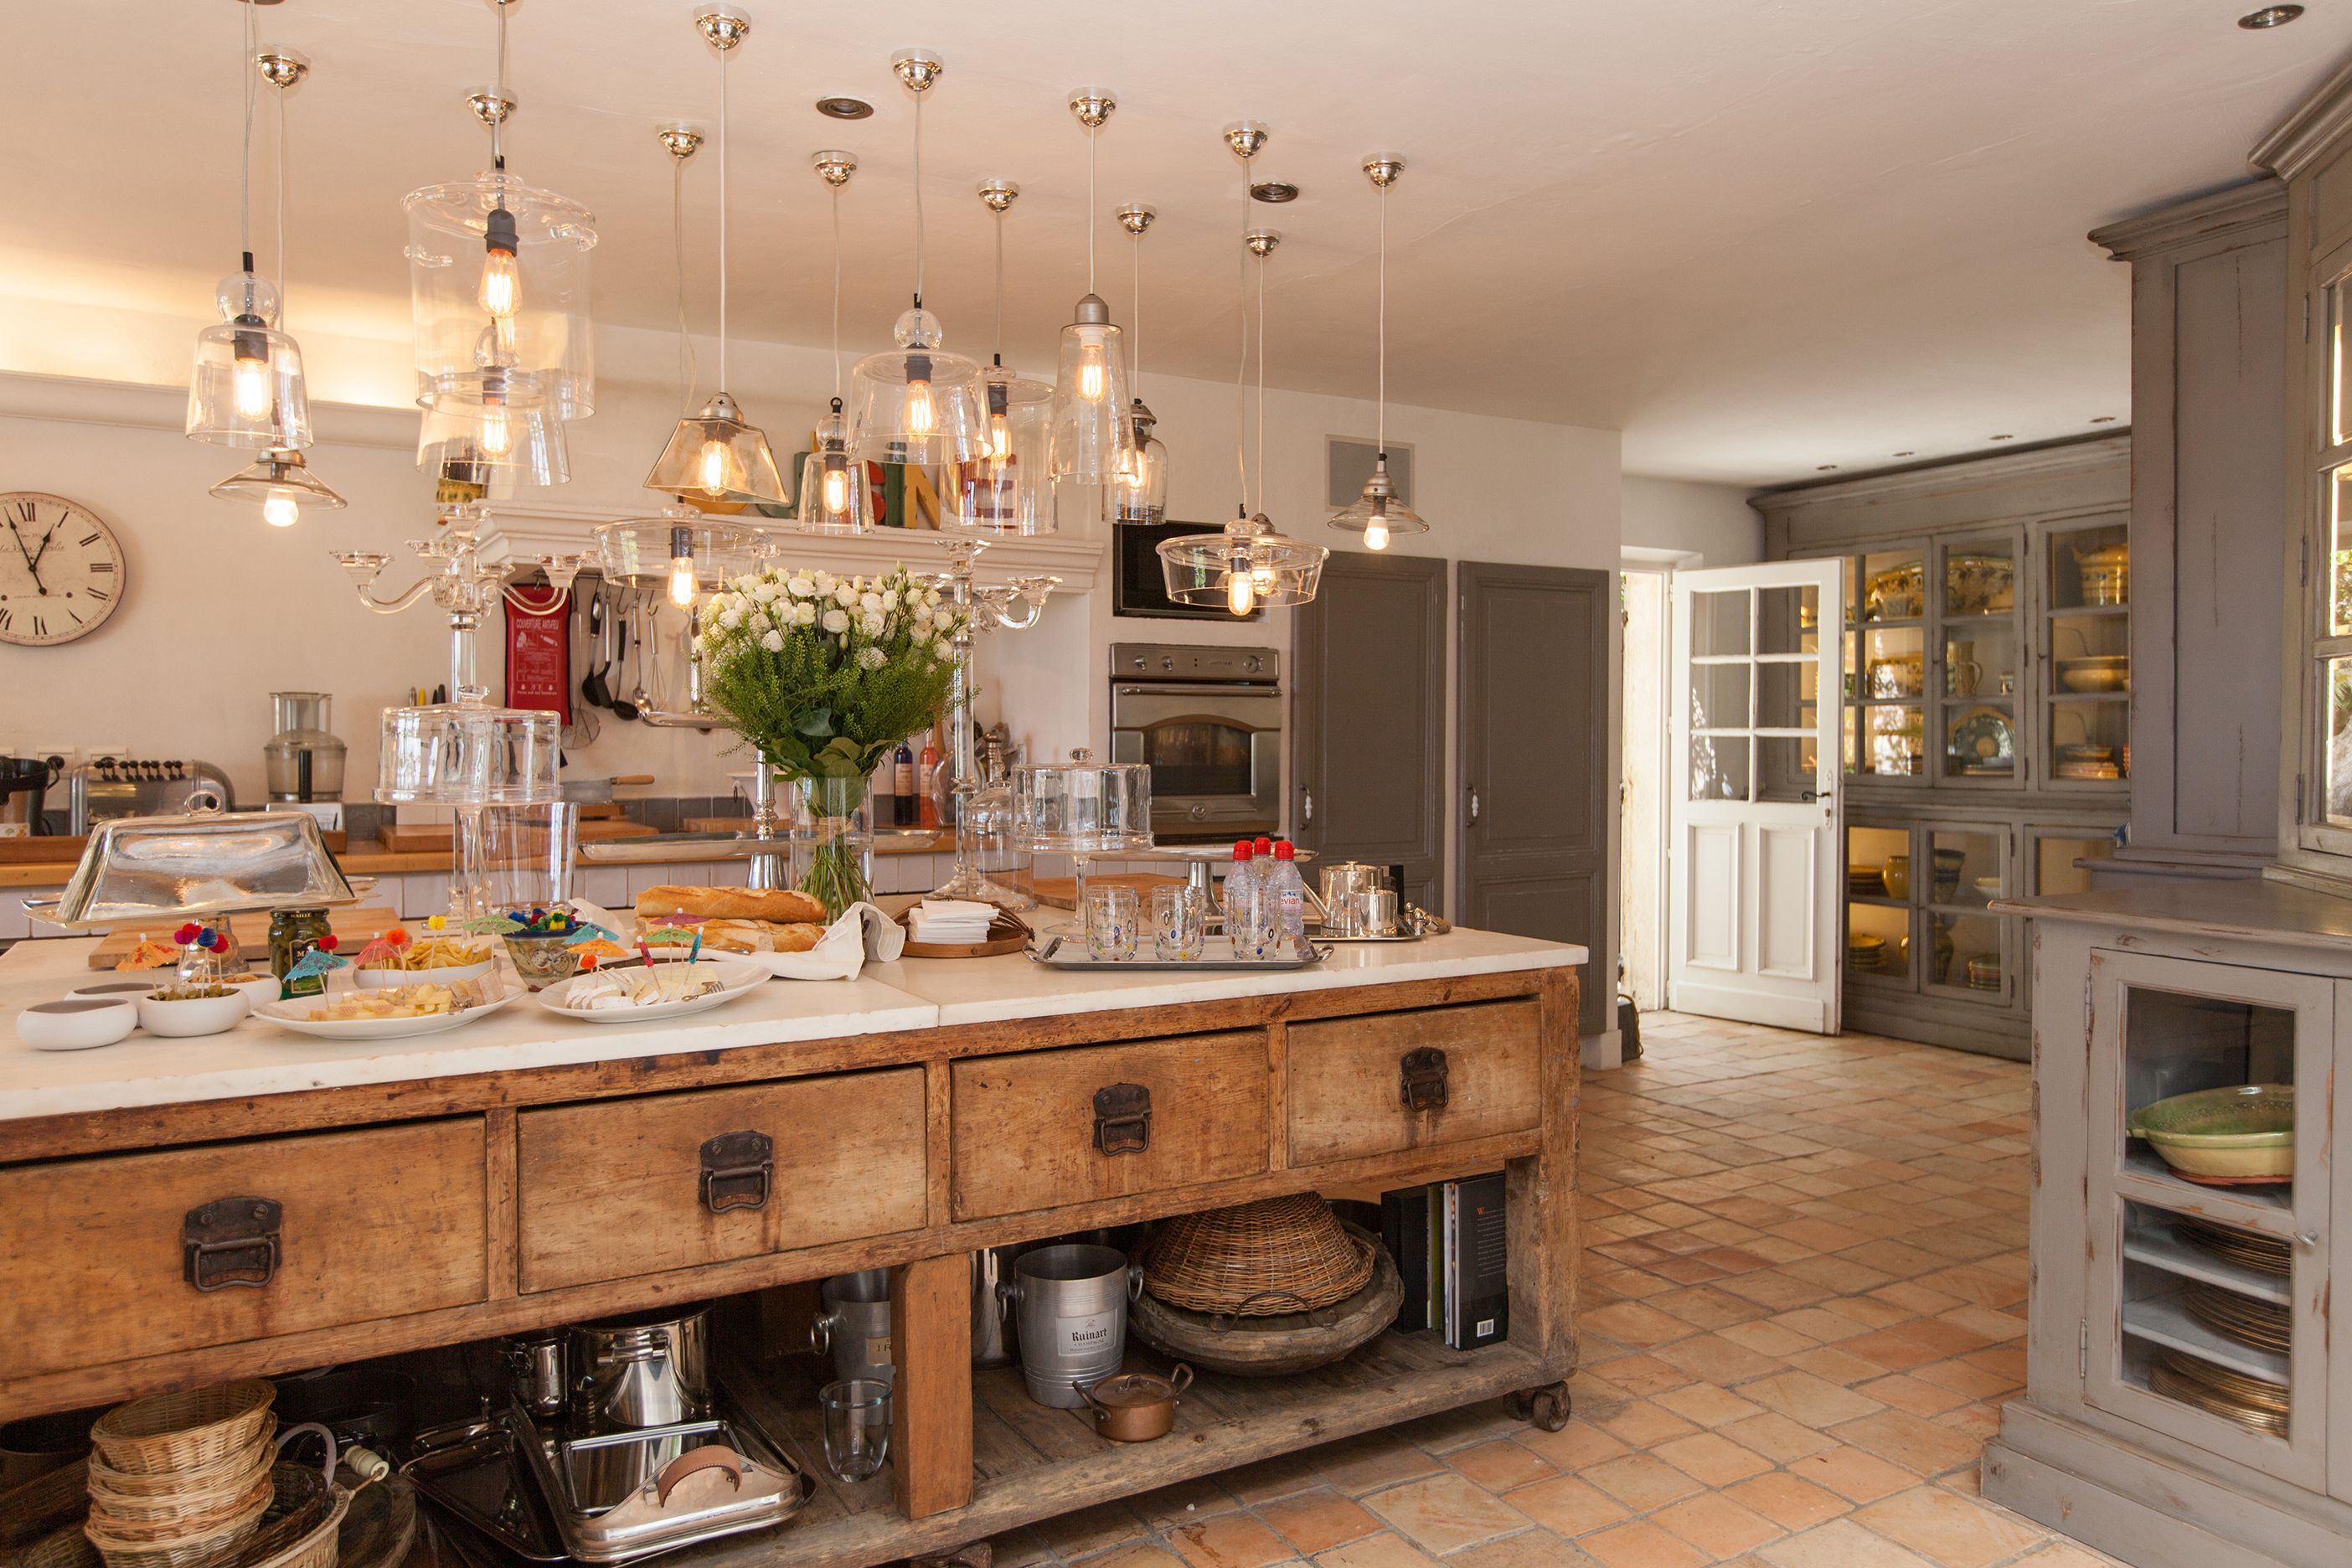 How to make a kitchen in the Provencal style